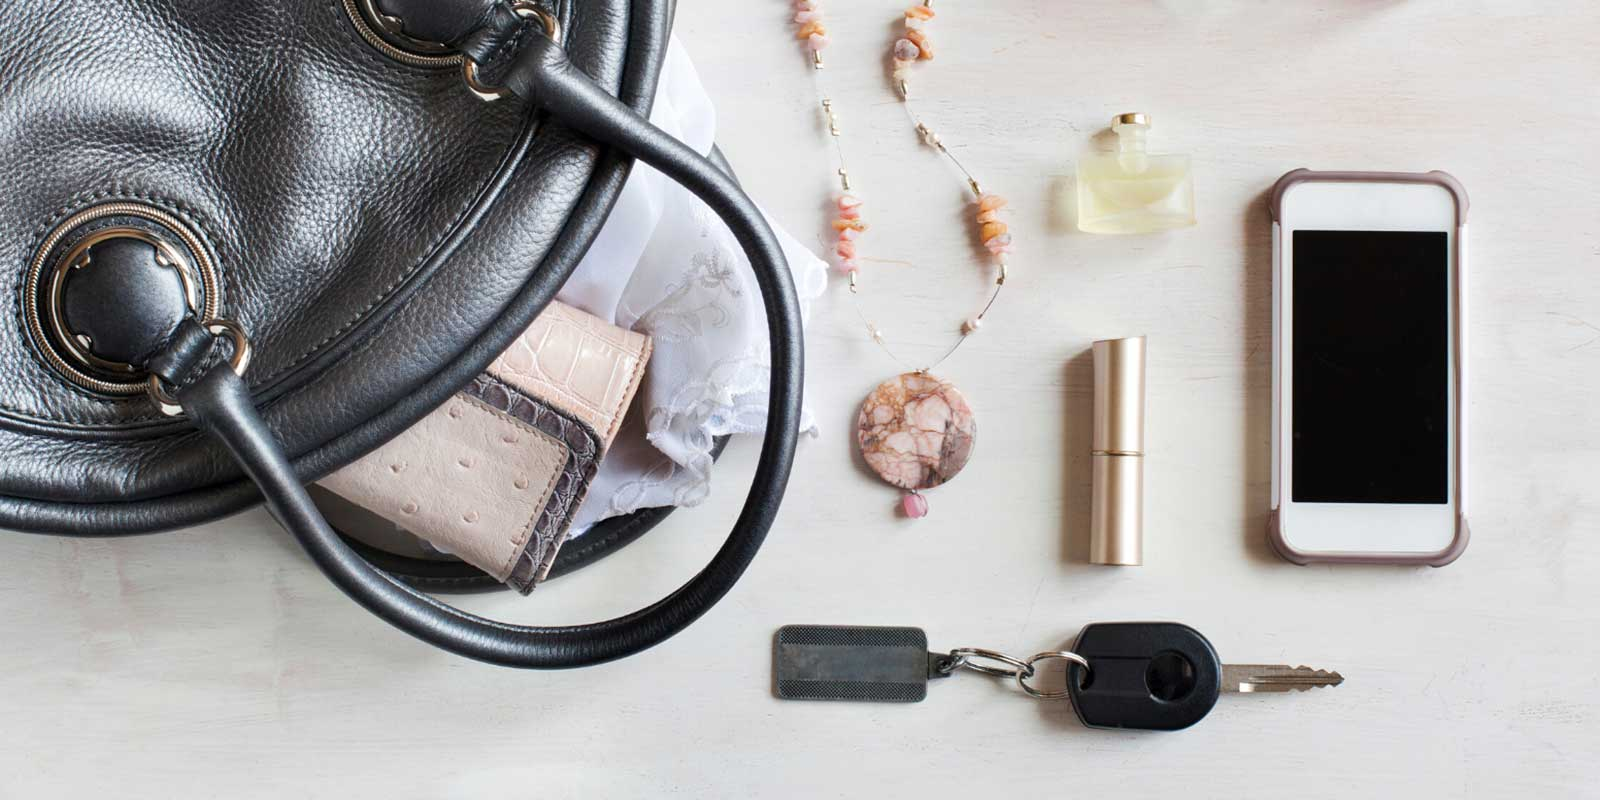 Purpose of a Large Leather Purse